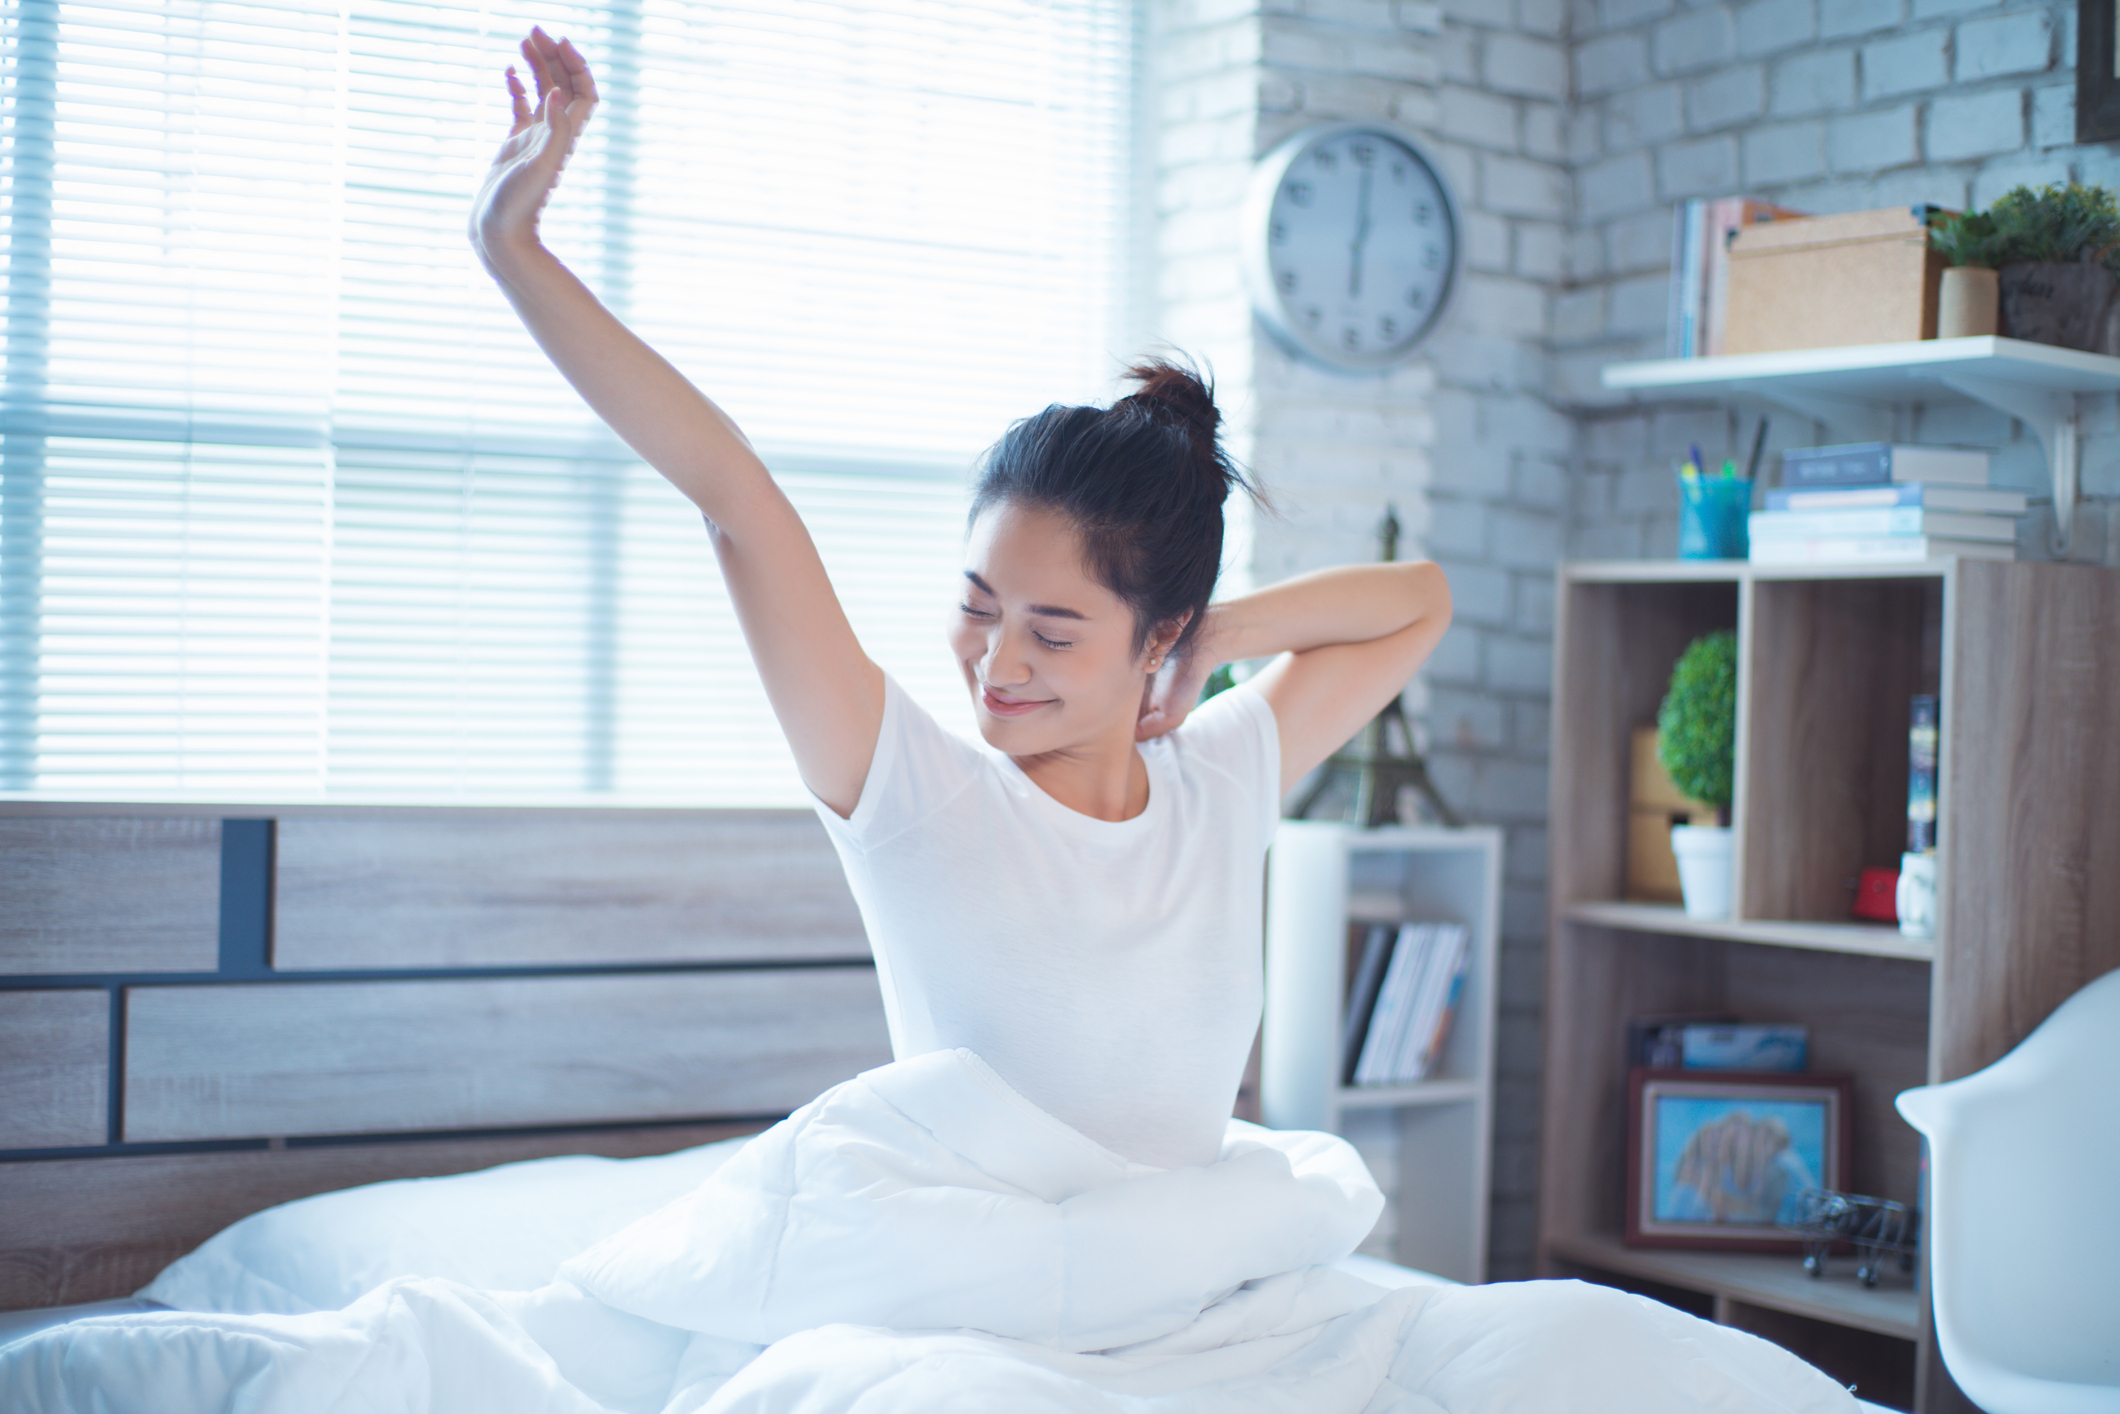 https://d3srkhfokg8sj0.cloudfront.net/wp-content/uploads/SH101_Library/young-woman-waking-up-stretching-GettyImages-930468056.jpg